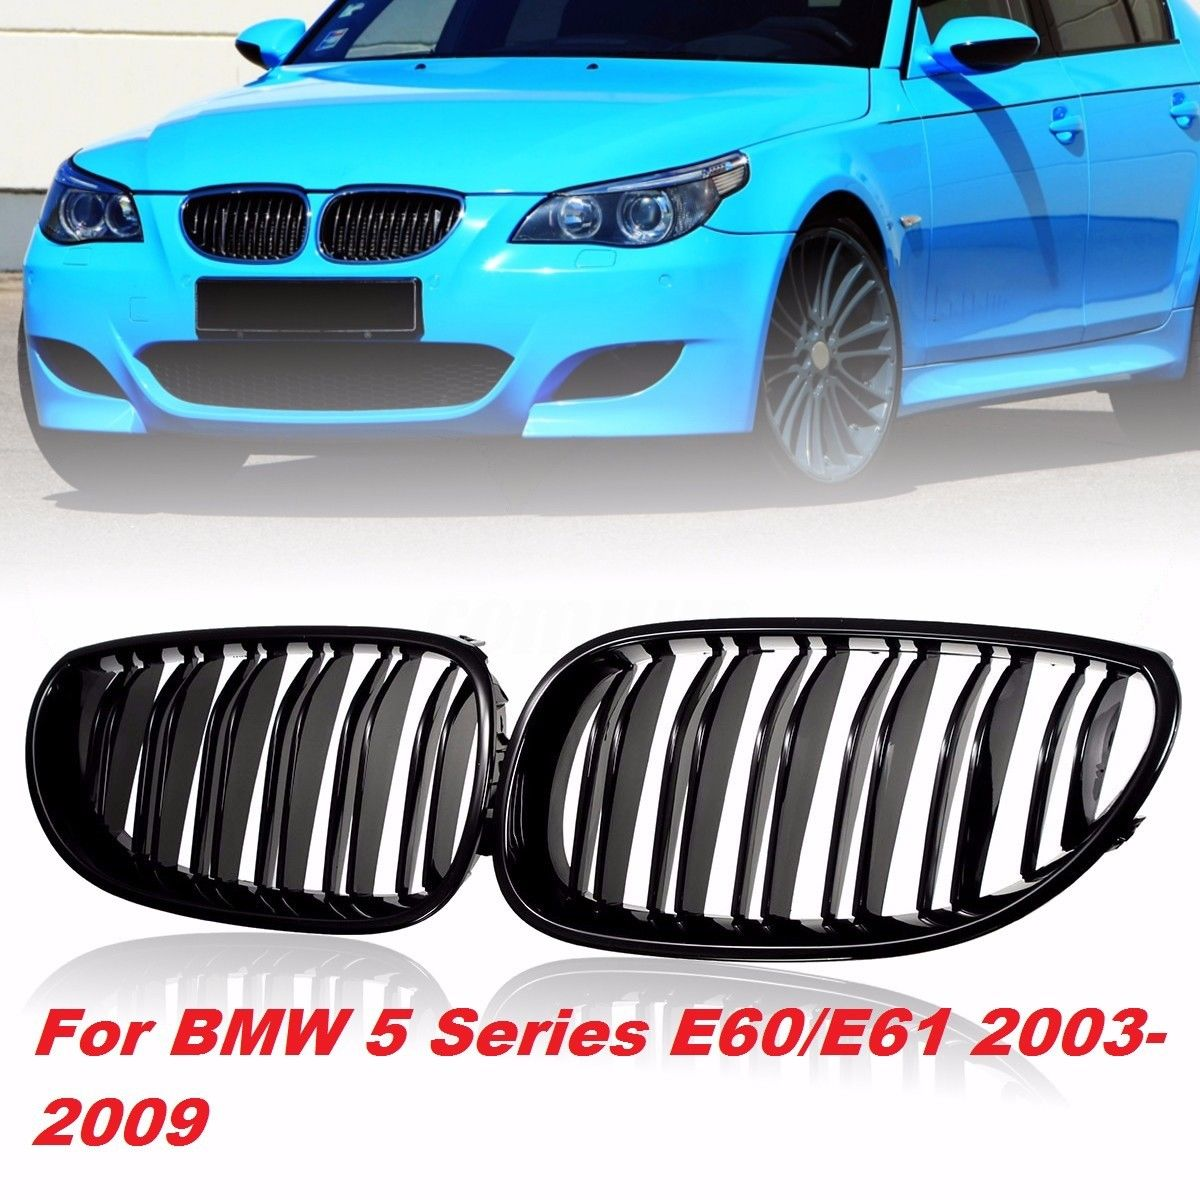 1 Pair Gloss Black Front Kidney Grill Grille For <font><b>BMW</b></font> E60 <font><b>E61</b></font> 5 SERIES 2003-2009 image